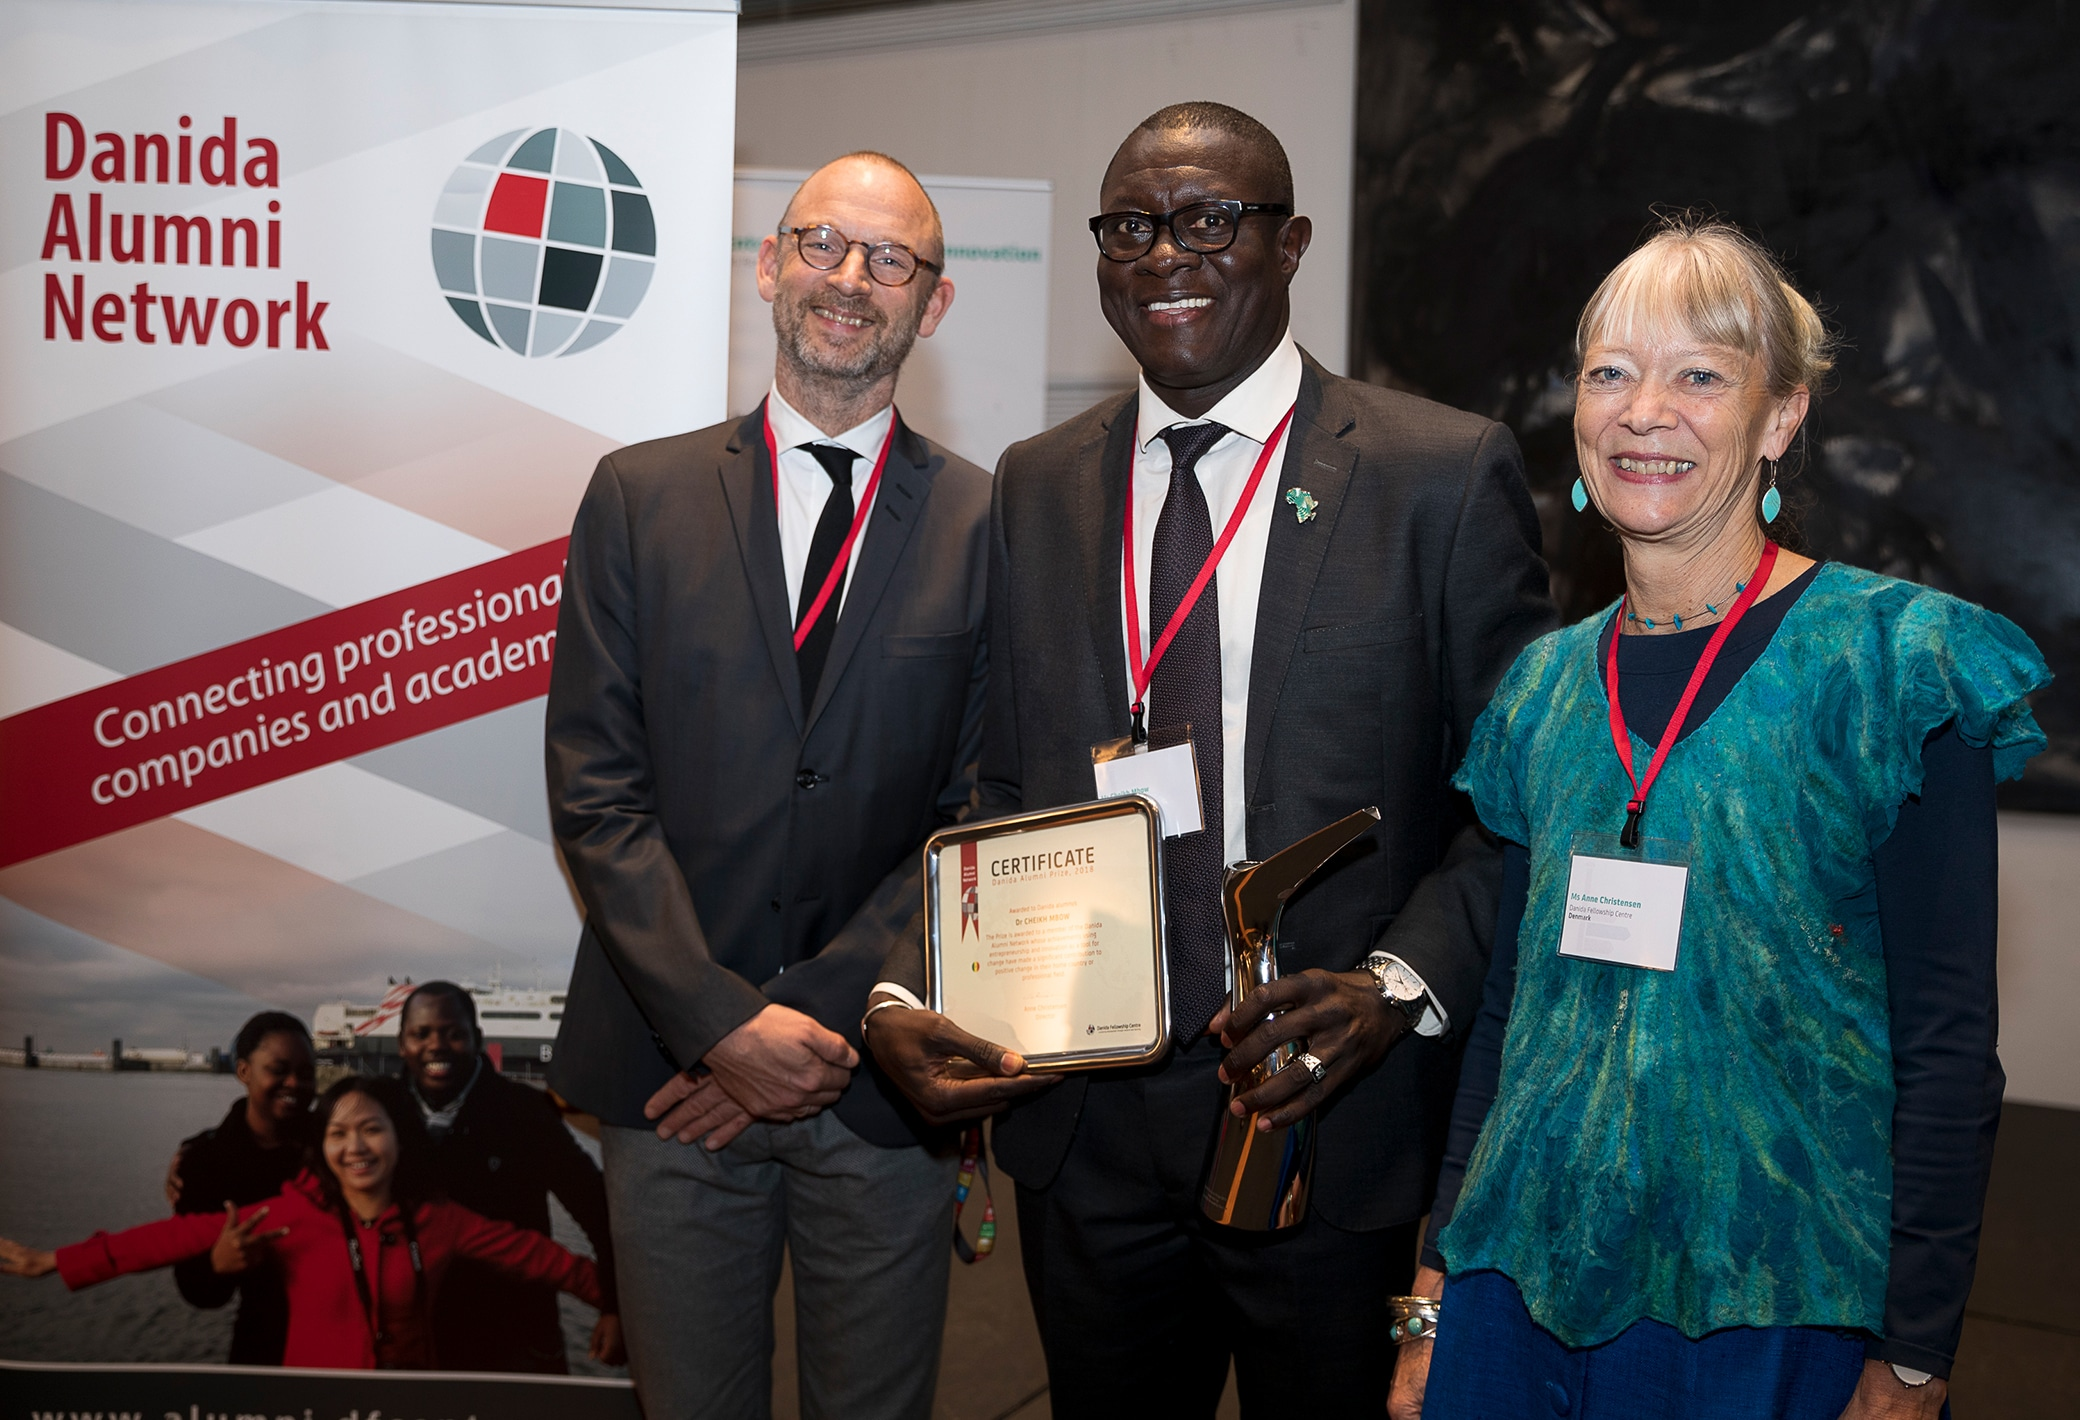 Dr. Cheikh Mbow received the Danida Alumni Prize 2018 at a ceremony in Copenhagen 8 November. The prize was presented by Martin Bille Hermann, State Secretary for Development Policy, Ministry of Foreign Affairs of Denmark and Anne Christensen, Director Danida Fellowship Centre.